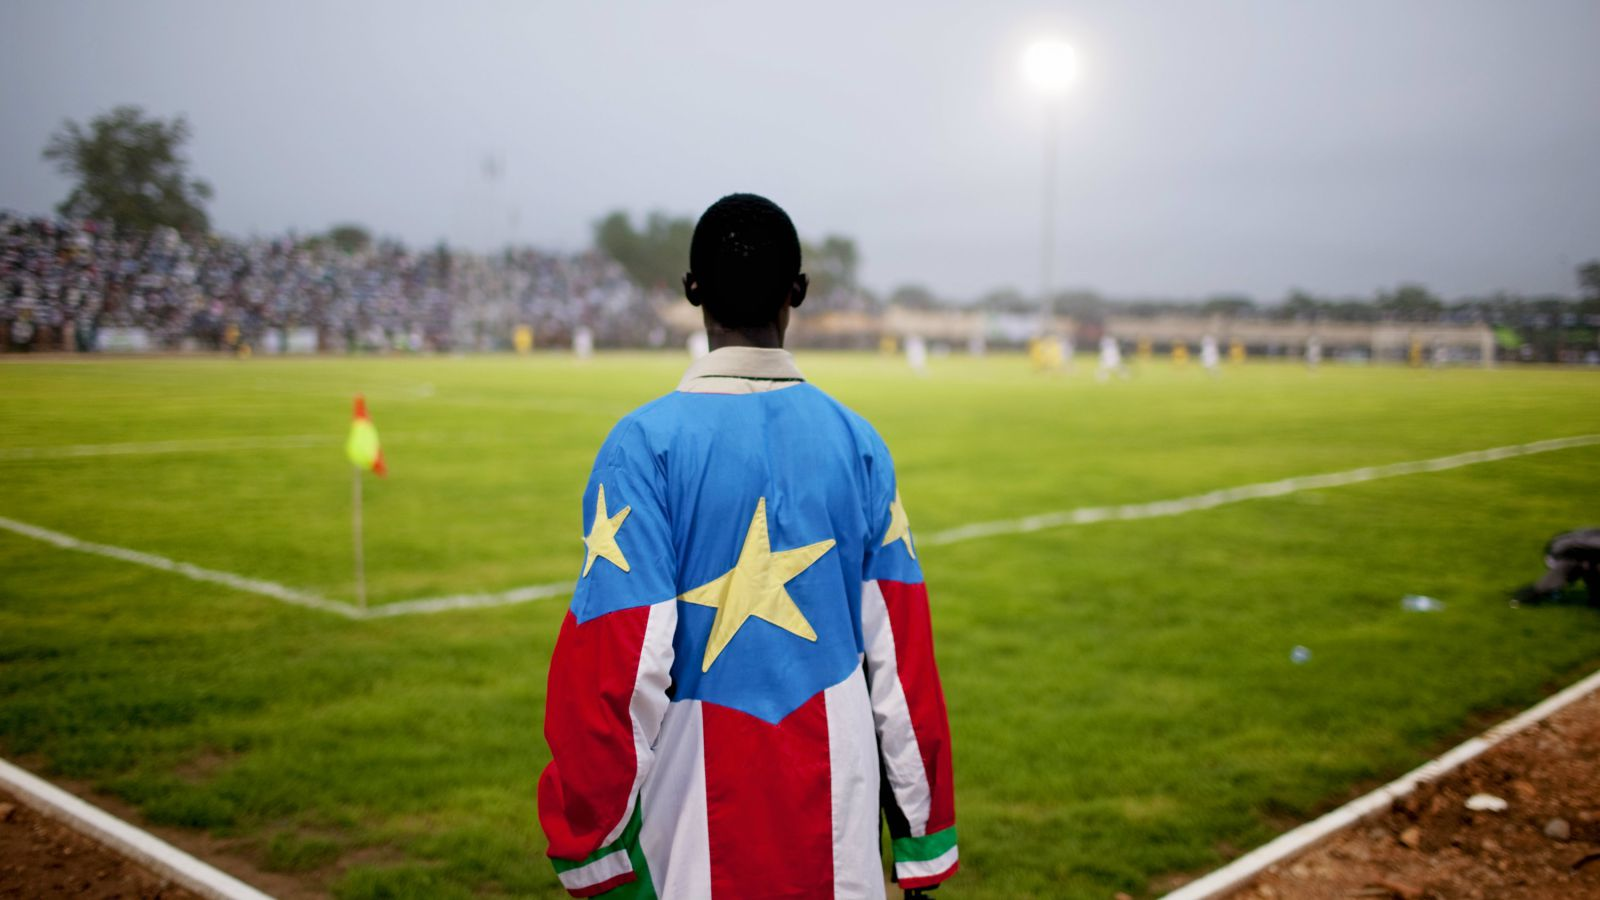 World Cup to Unite Divided South Sudan